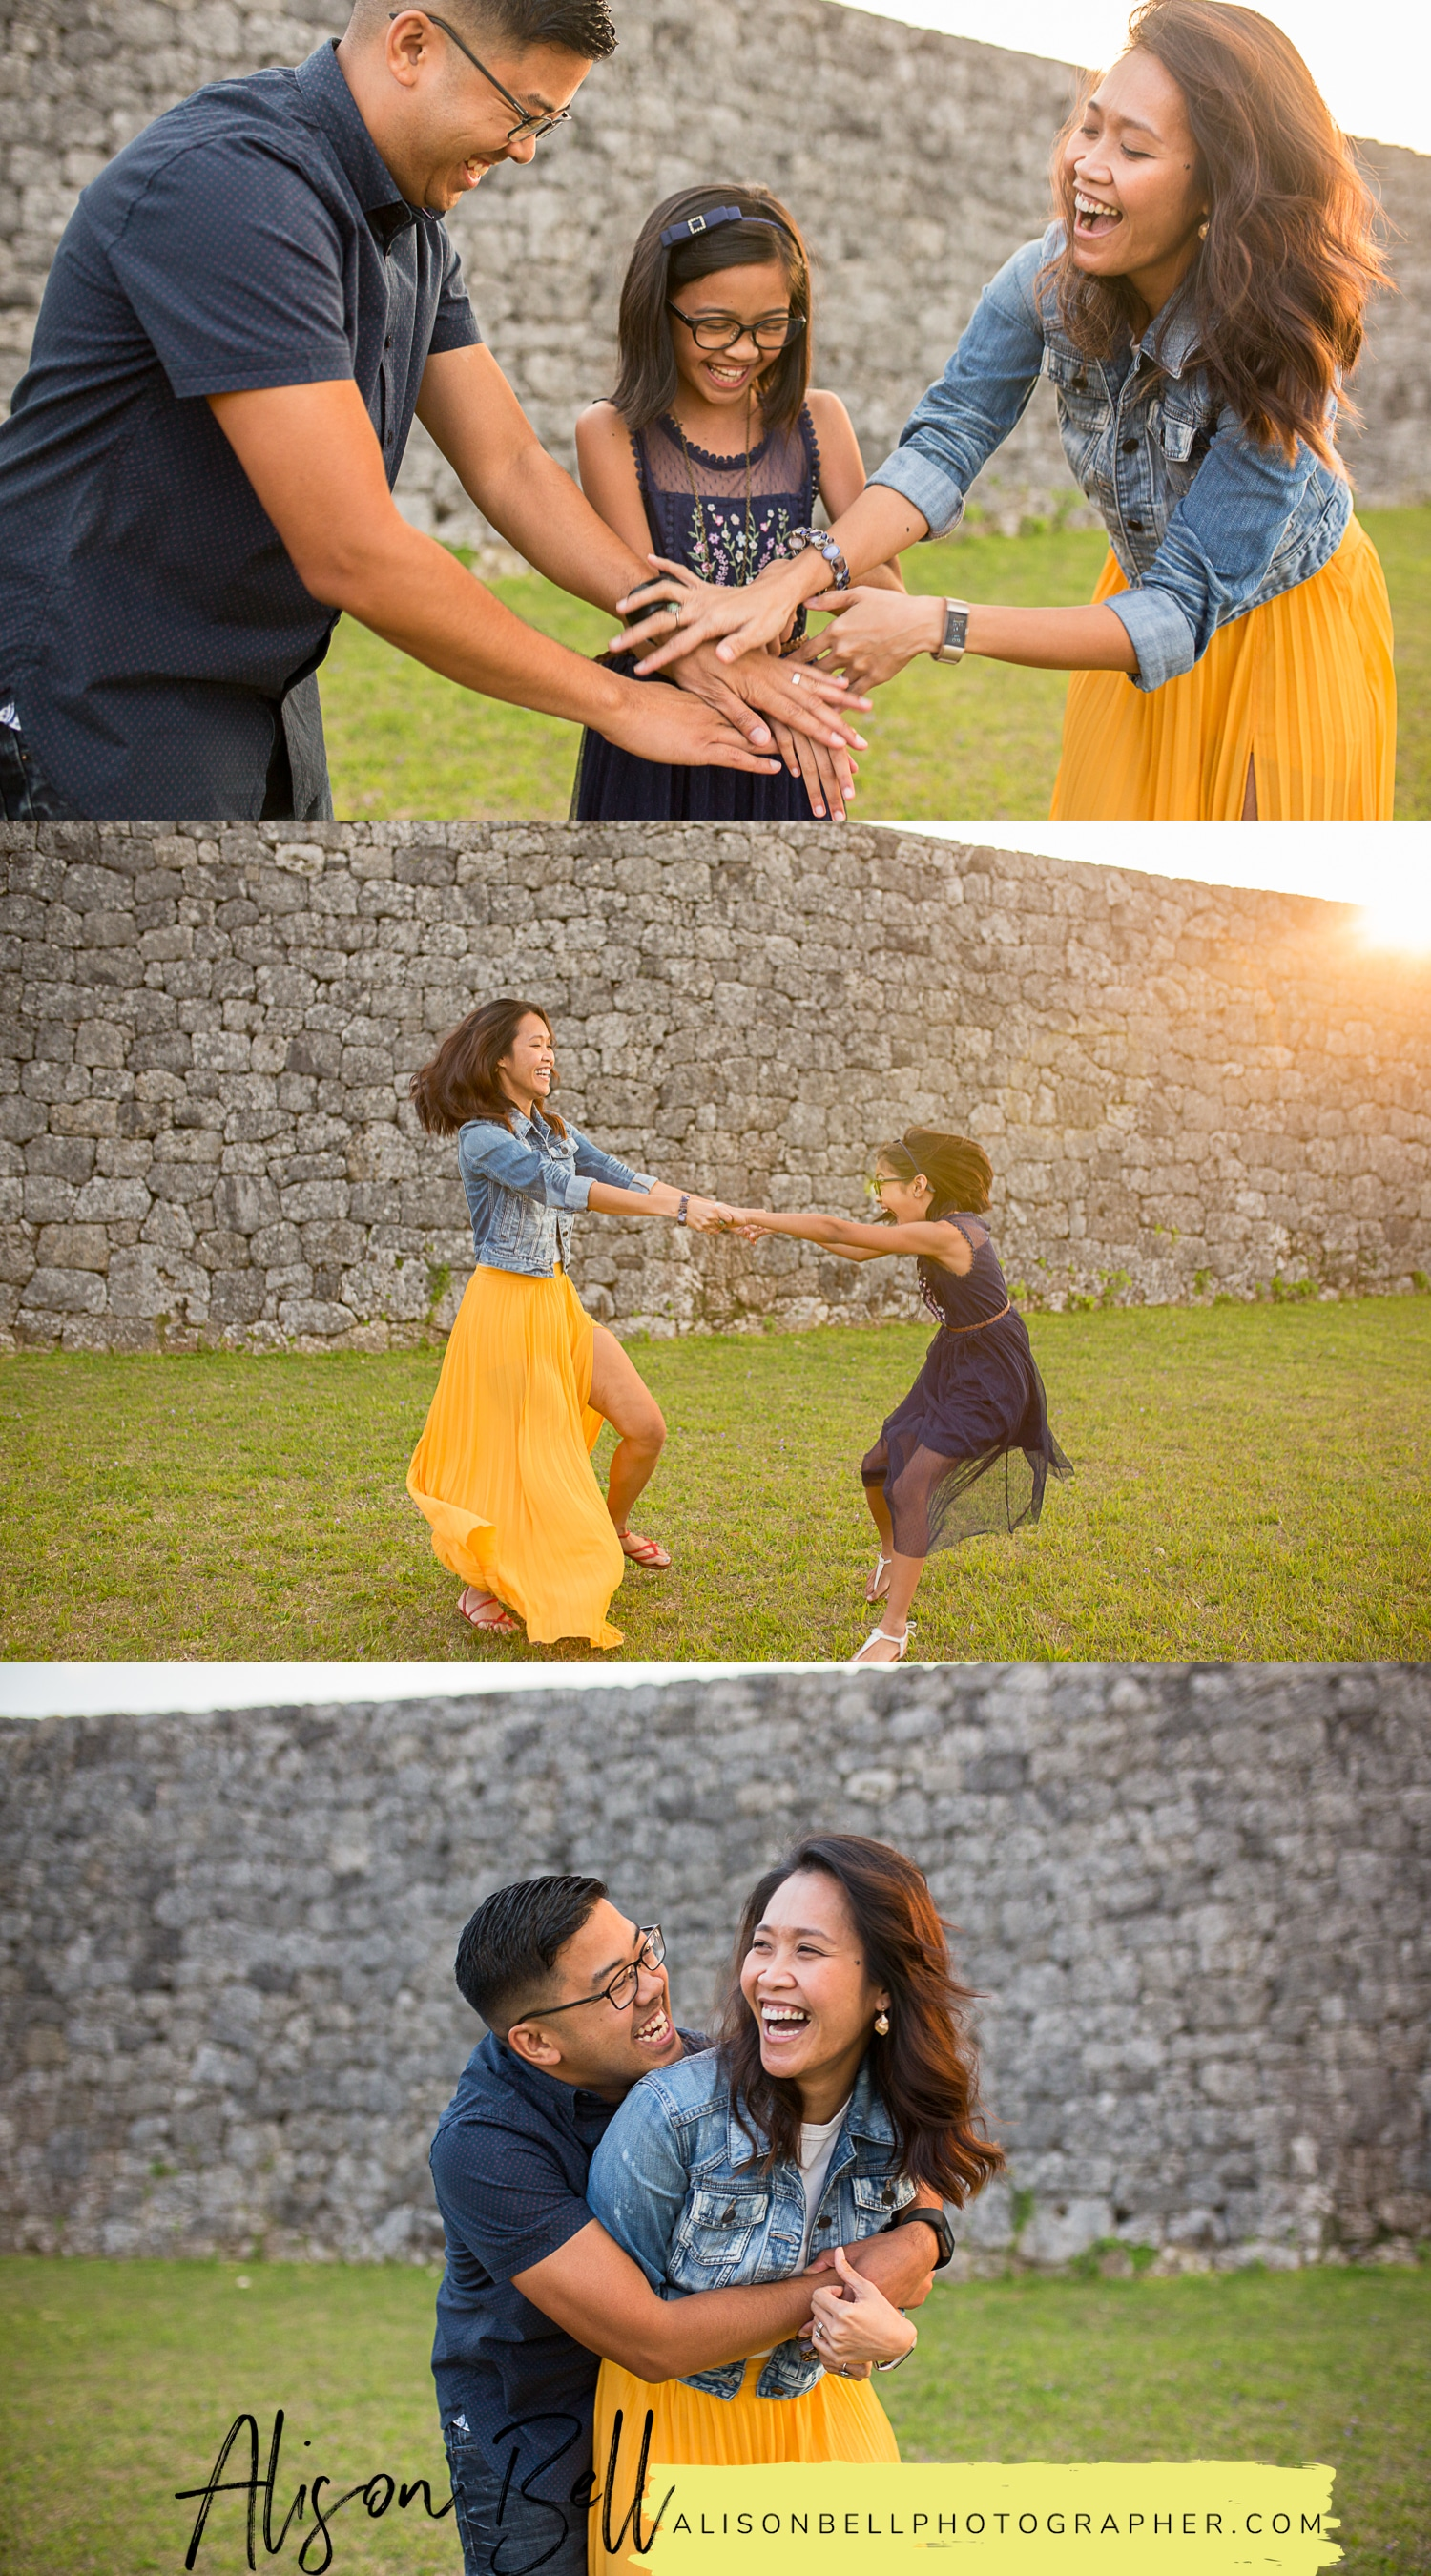 Half Priced Mini Sessions in 15 minutes at Zakimi Castle in Okinawa, Japan by Alison Bell, Photographer. Great for families, kids, cake smash, maternity and simple senior portraits